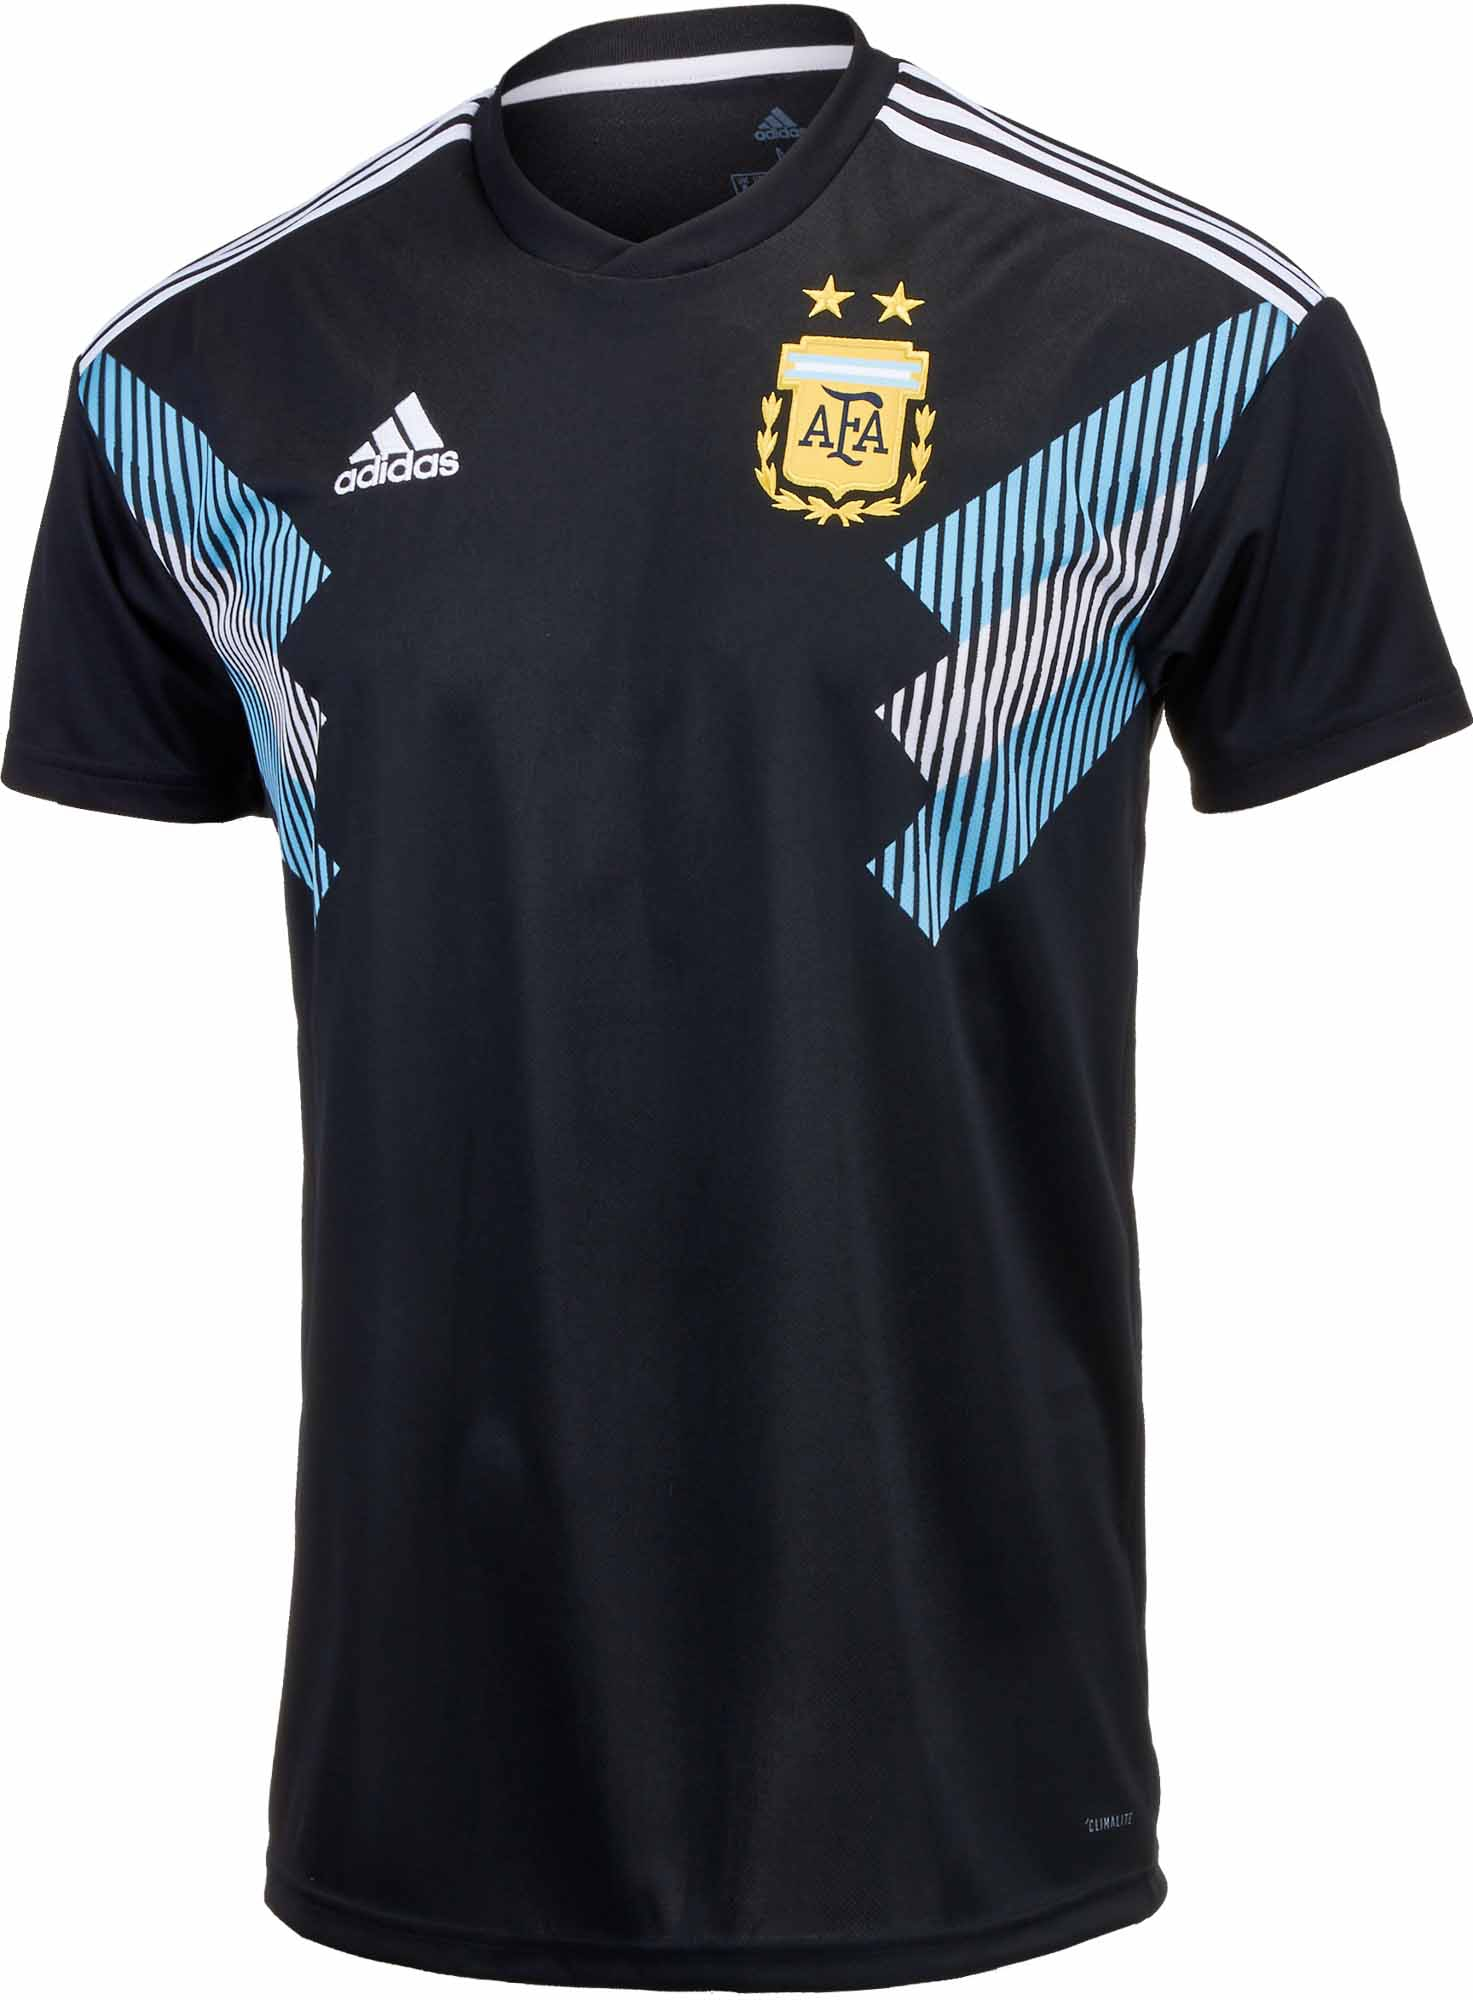 8cc2a35be36 Jersey - Argentina Away Kit World Cup Official 2018 Jersey Football Jersey  Onl. ‹ ›